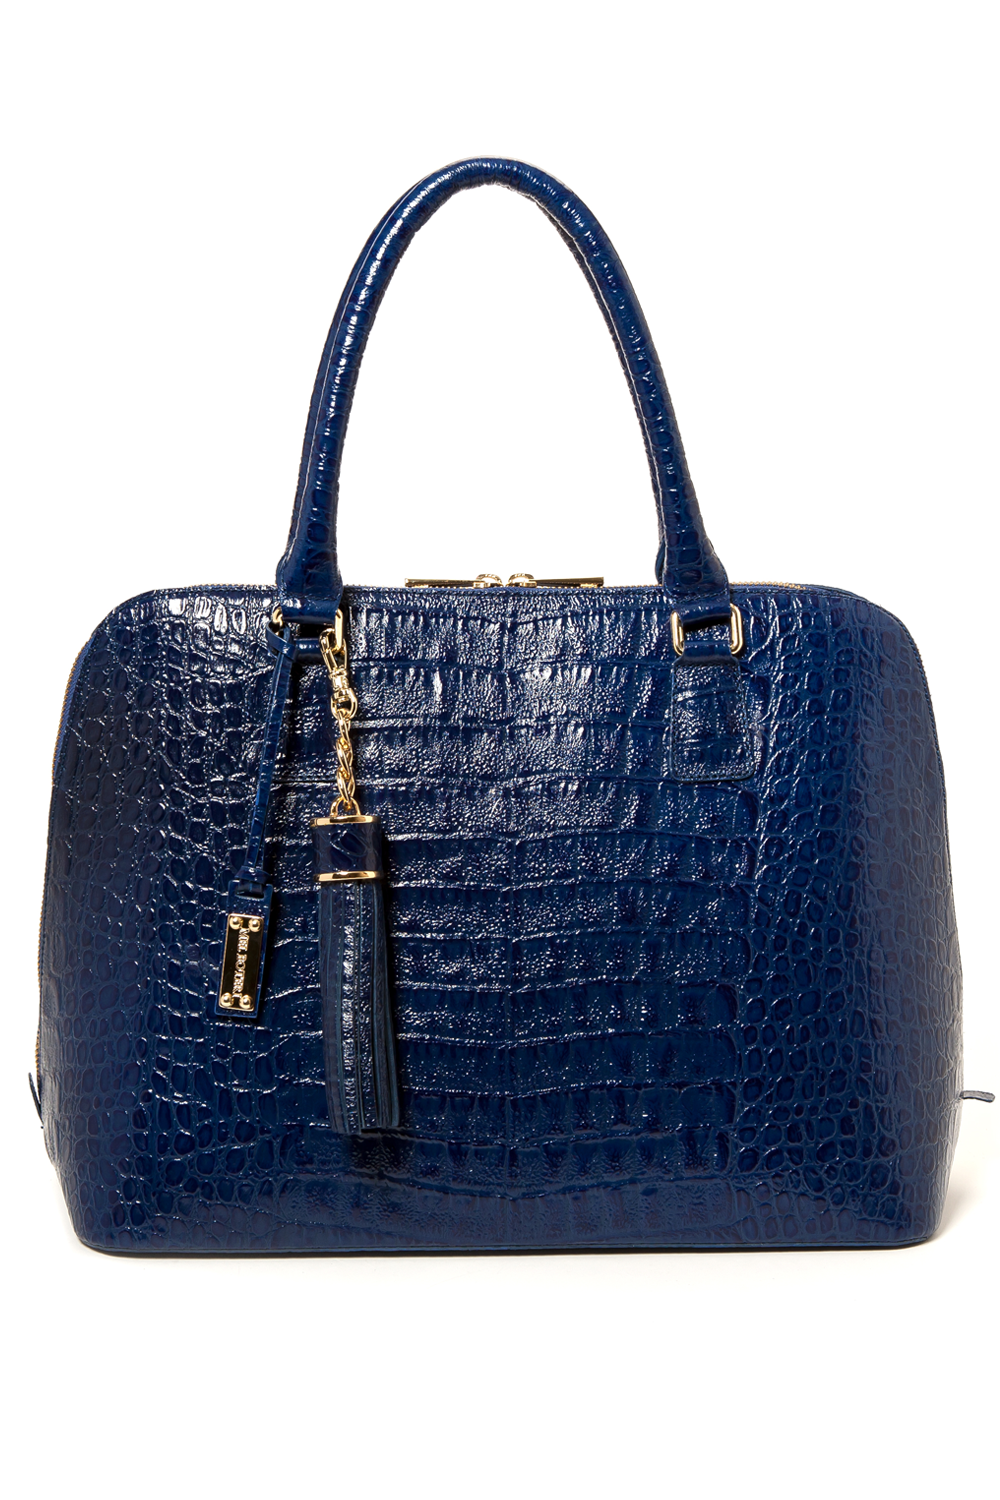 Luxe Blue, Caiman-Effect Leather 'Watson' Tote | Mel Boteri | Front View